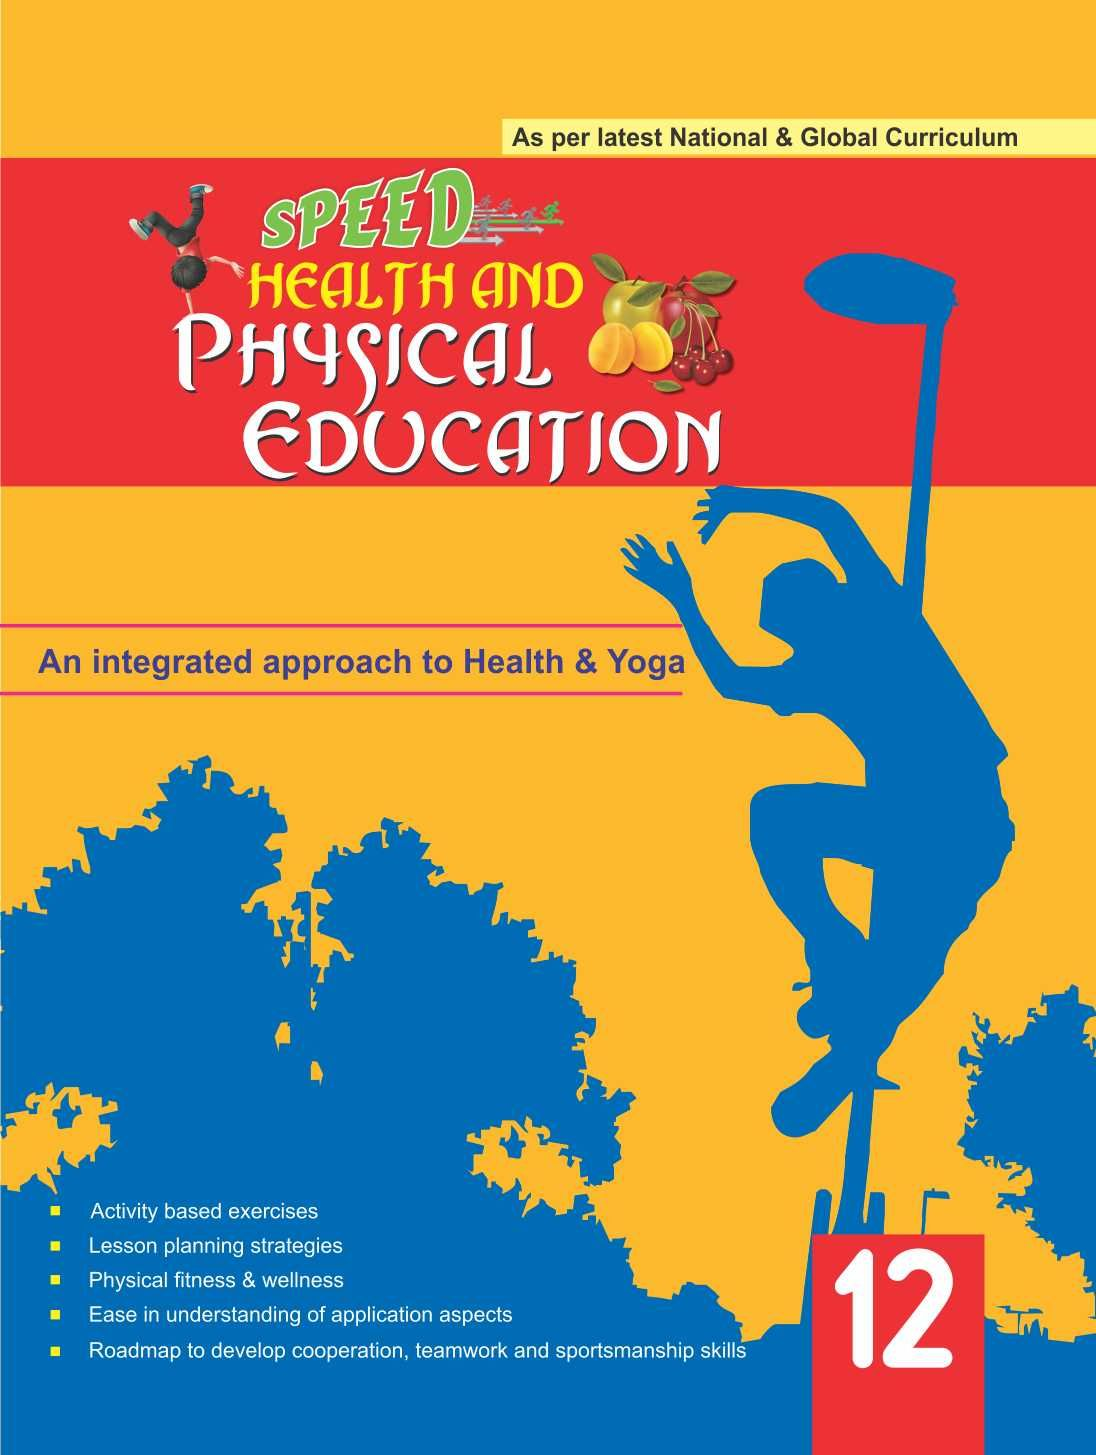 Speed health physical education for class 12 health education speed health physical education for class 12 malvernweather Choice Image